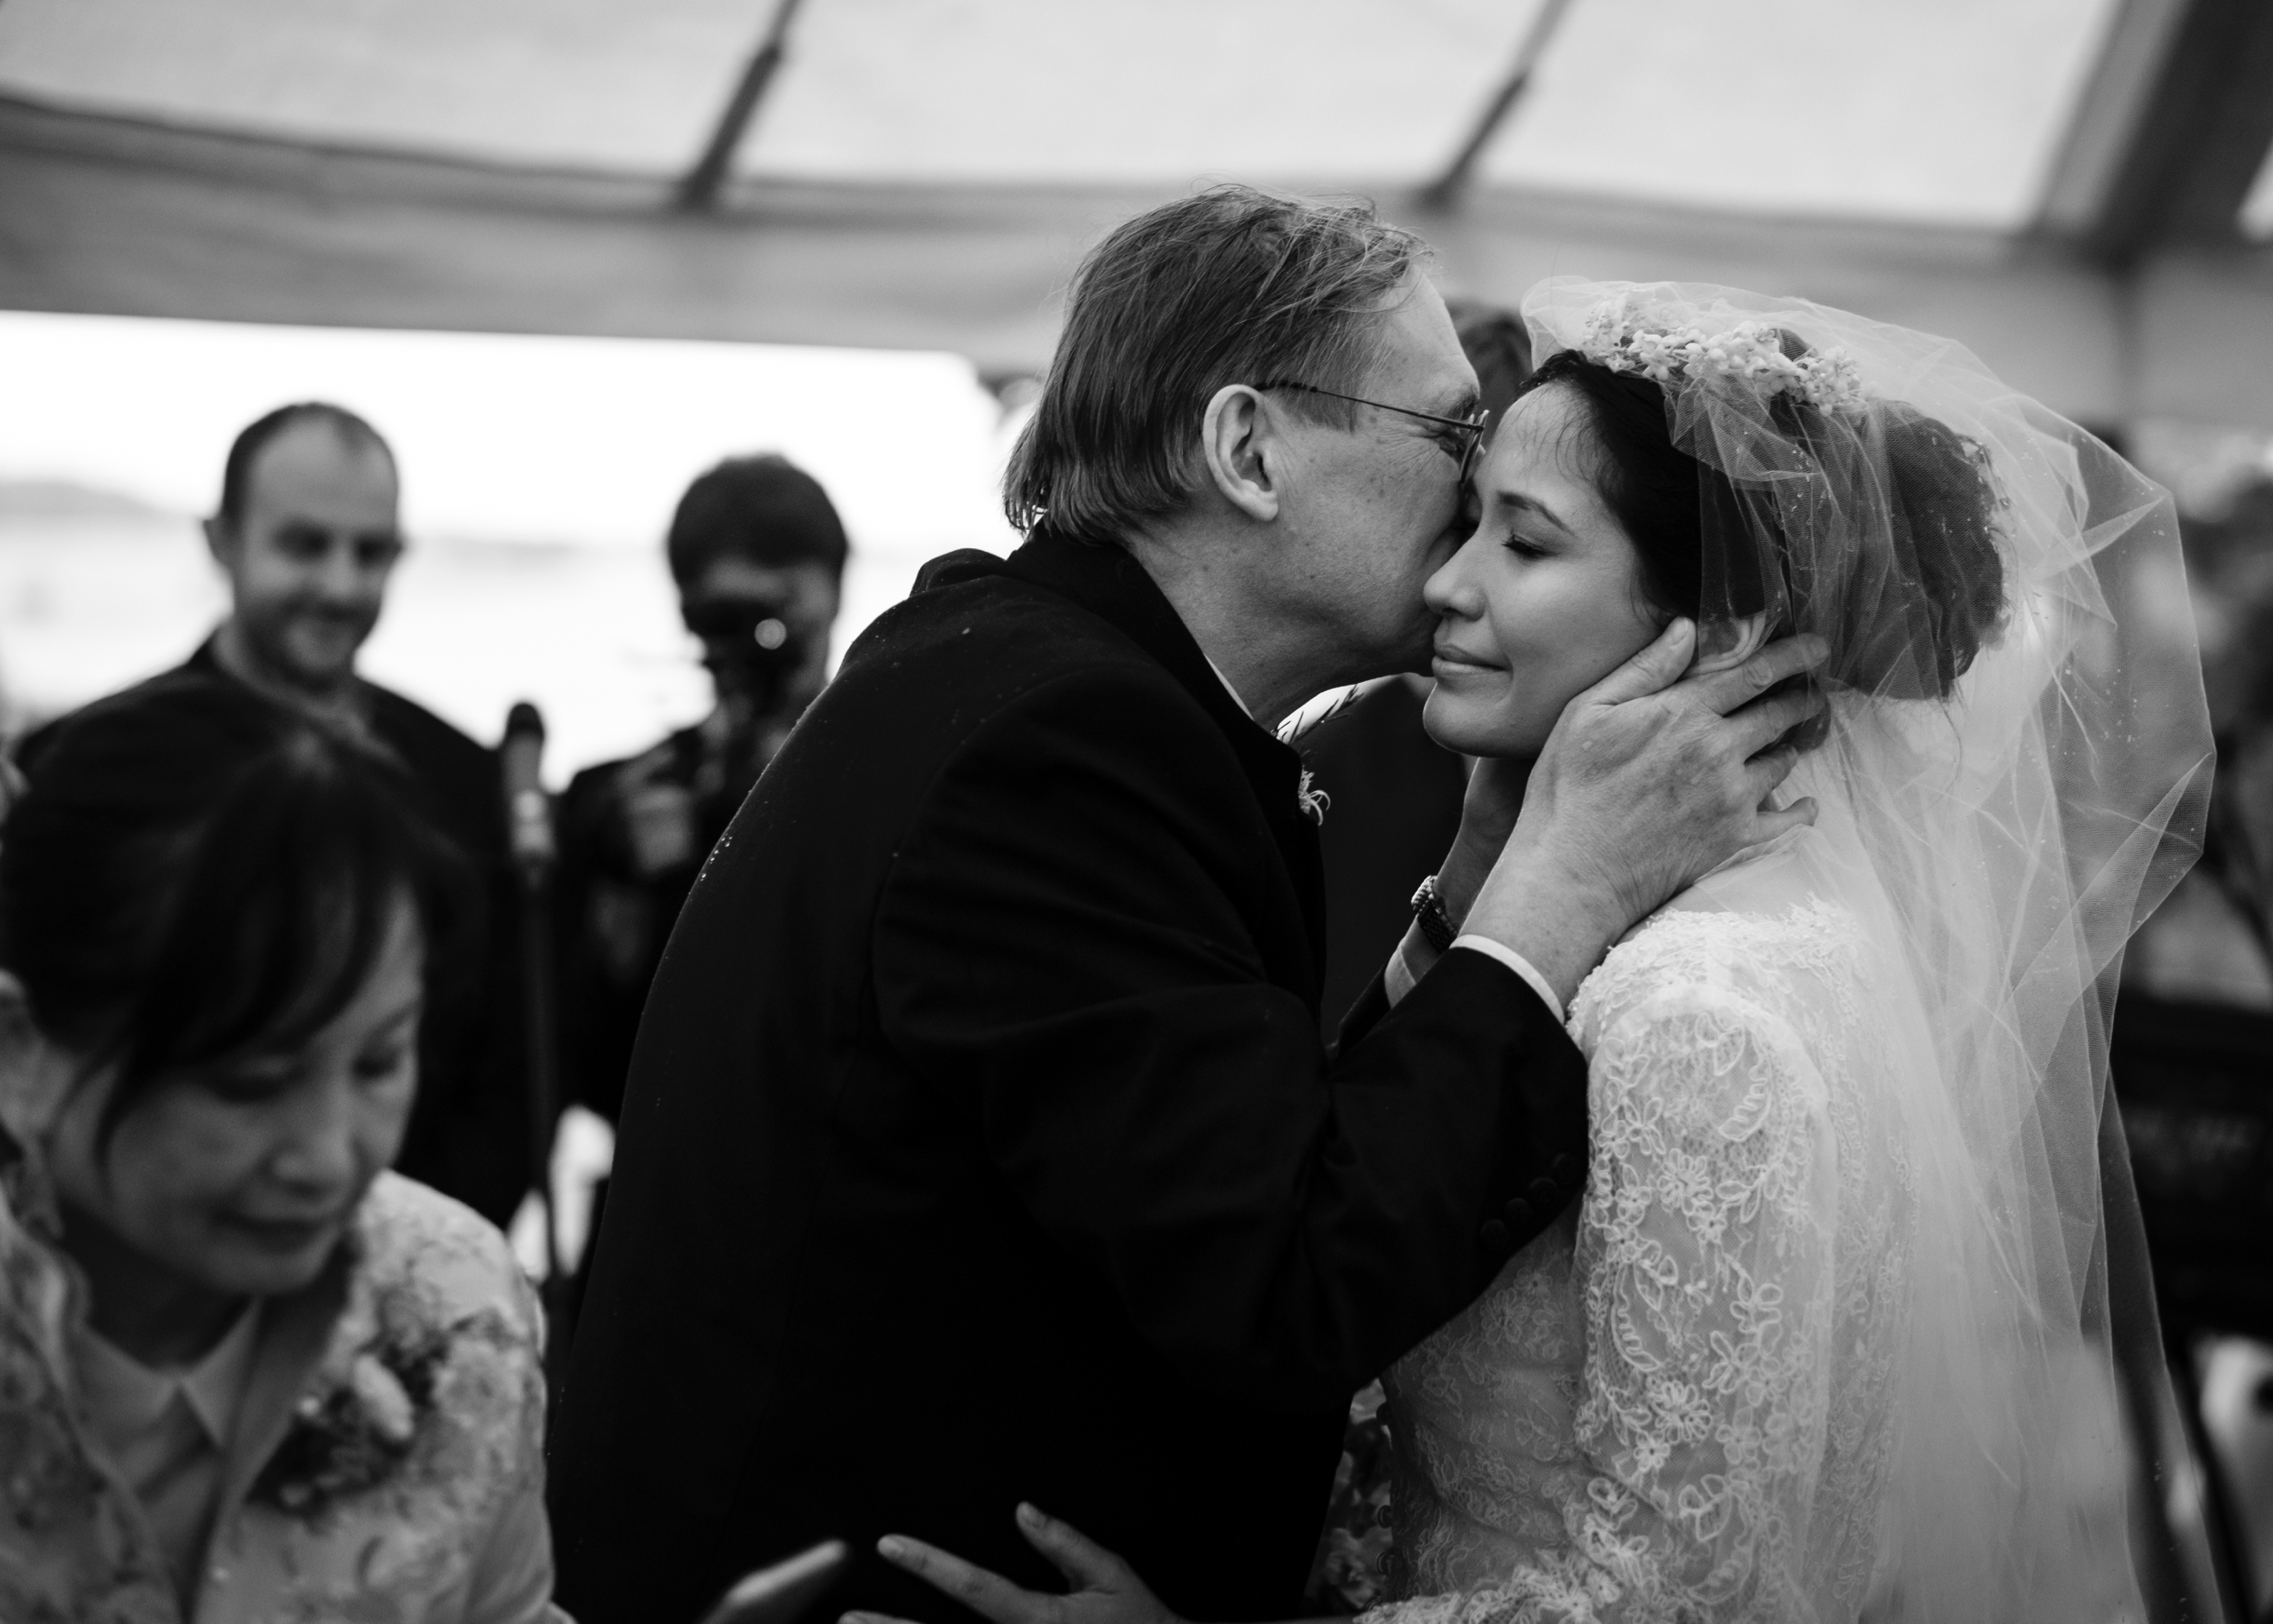 Wedding Photographer Rupert Marlow photograph of The father of the bride, kissing her on her wedding day in Gloucestershire